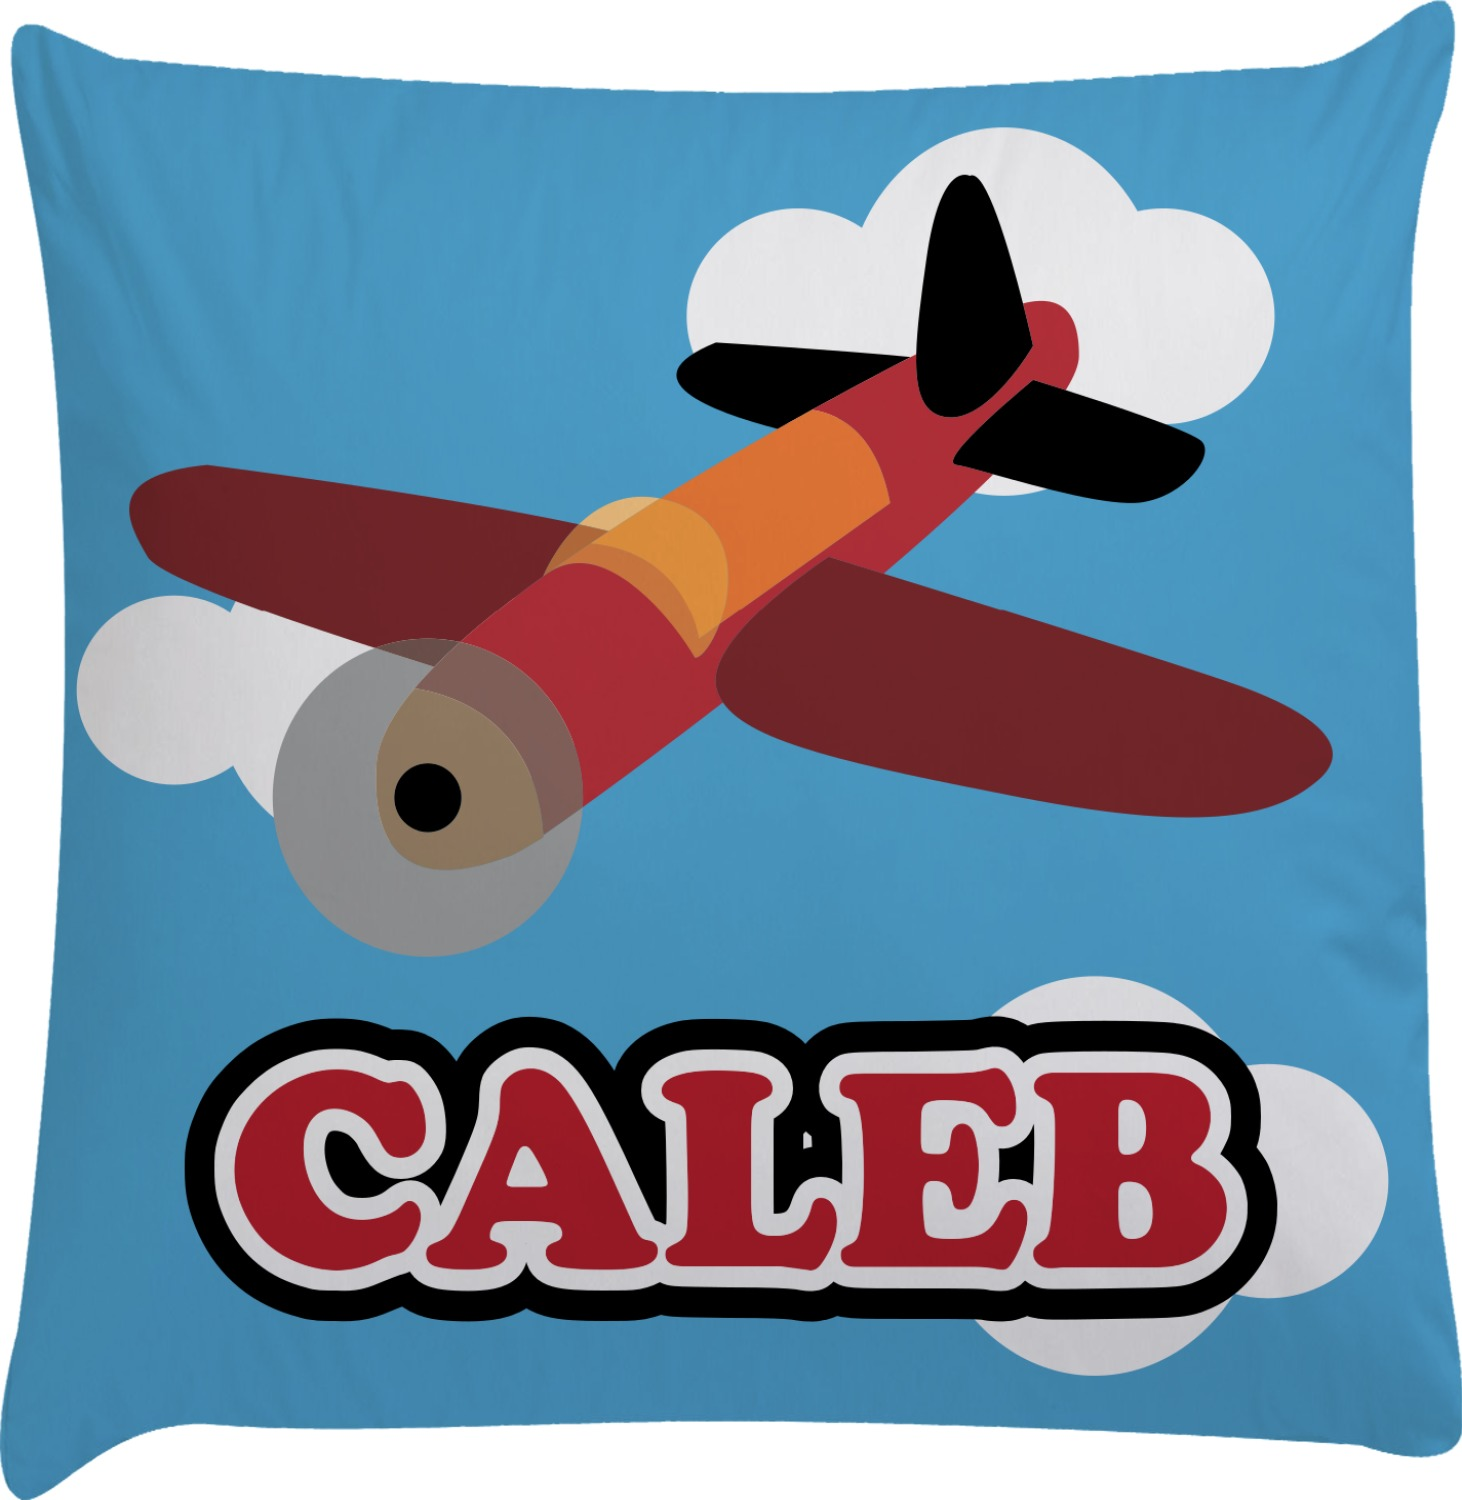 Decorative Airplane Pillow : Airplane Decorative Pillow Case (Personalized) - YouCustomizeIt